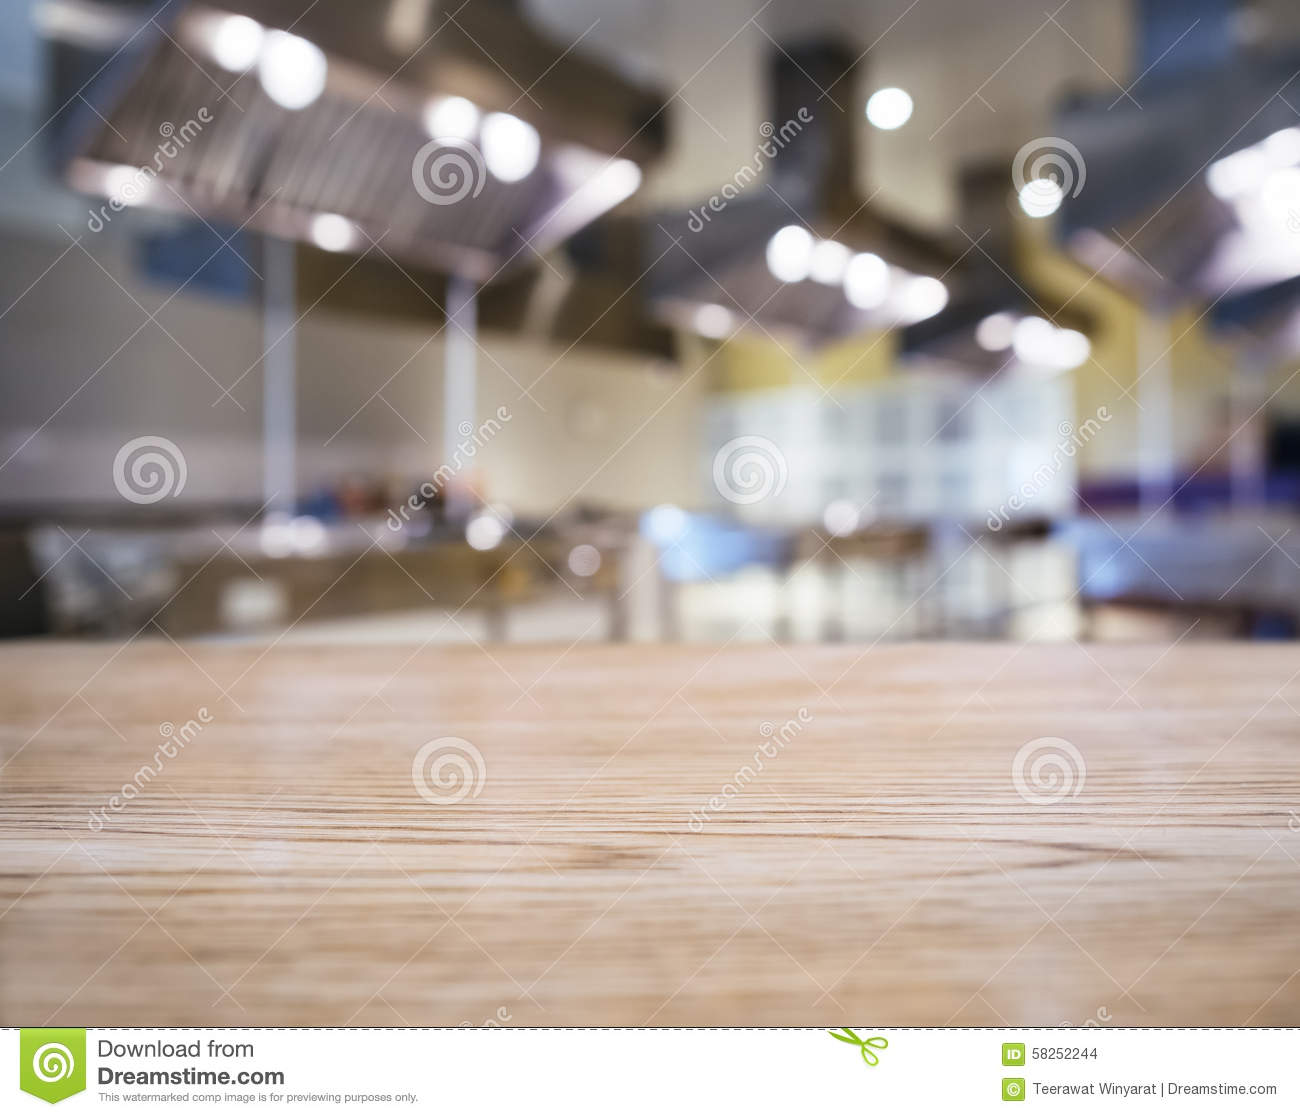 Kitchen Background Image: Table Top Counter Blurred Kitchen Background Stock Photo